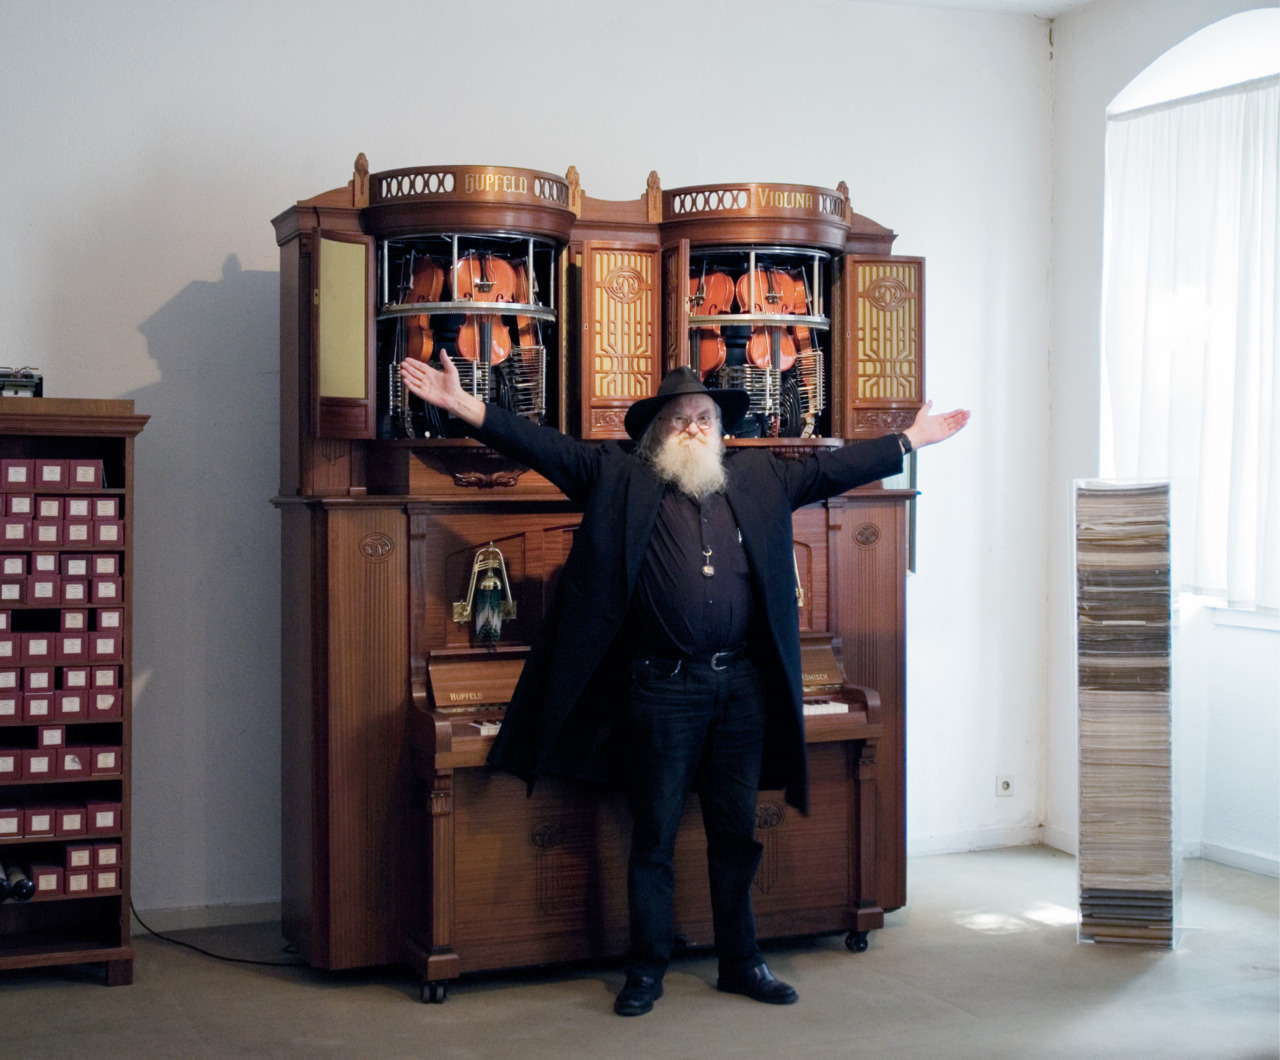 At Siegfried's Mechanical Music Cabinet, the self-playing violins are a big deal.  Au Siegfried's Mechanisches Musikkabinett, cette machine accorde ses violons (toute seule!). Photo by / par Anne Lass. See more from our April 2012 issue.Découvrez le reste de notre numéro d'avril 2012.